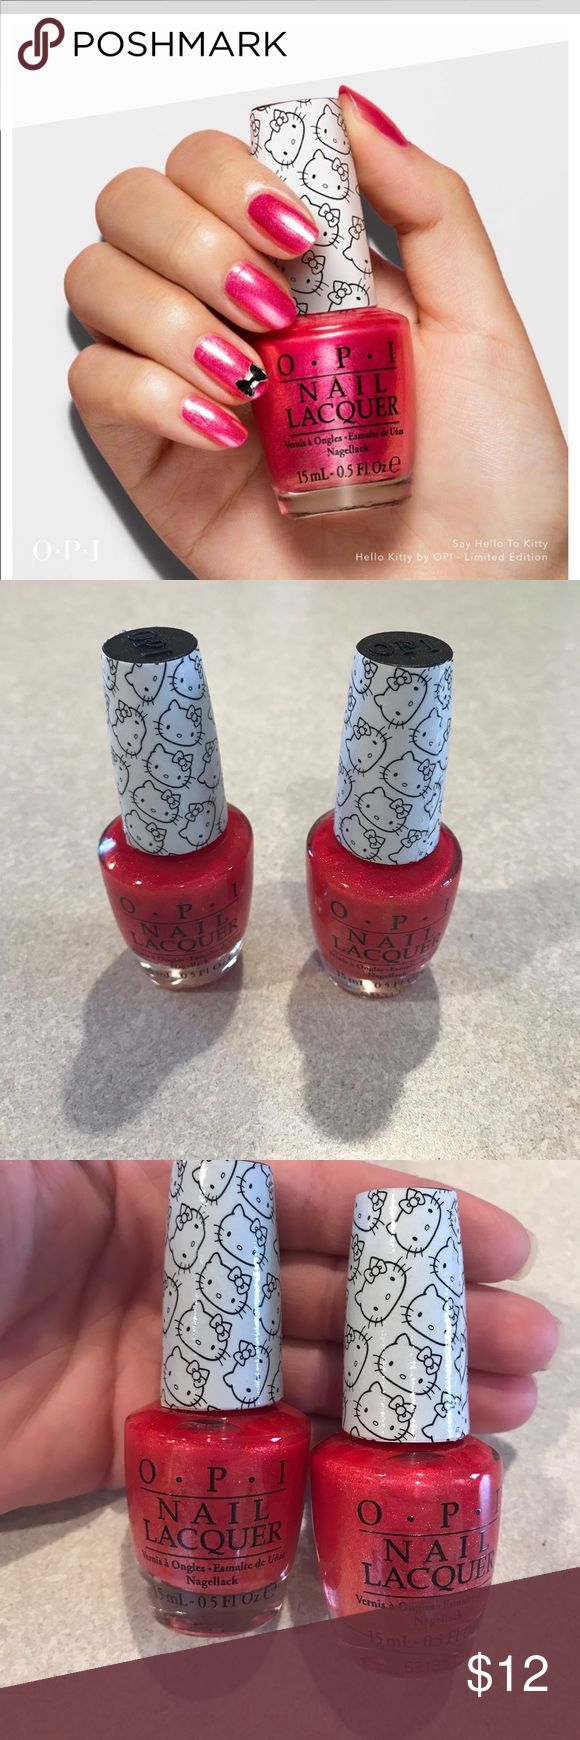 """Hello kitty OPI Nail polish Bought in a set and these two just are not the color I was hoping for. Never opened brand new. Limited edition hello kitty in color """"say hello kitty"""". Let me know if you have any questions OPI Makeup"""